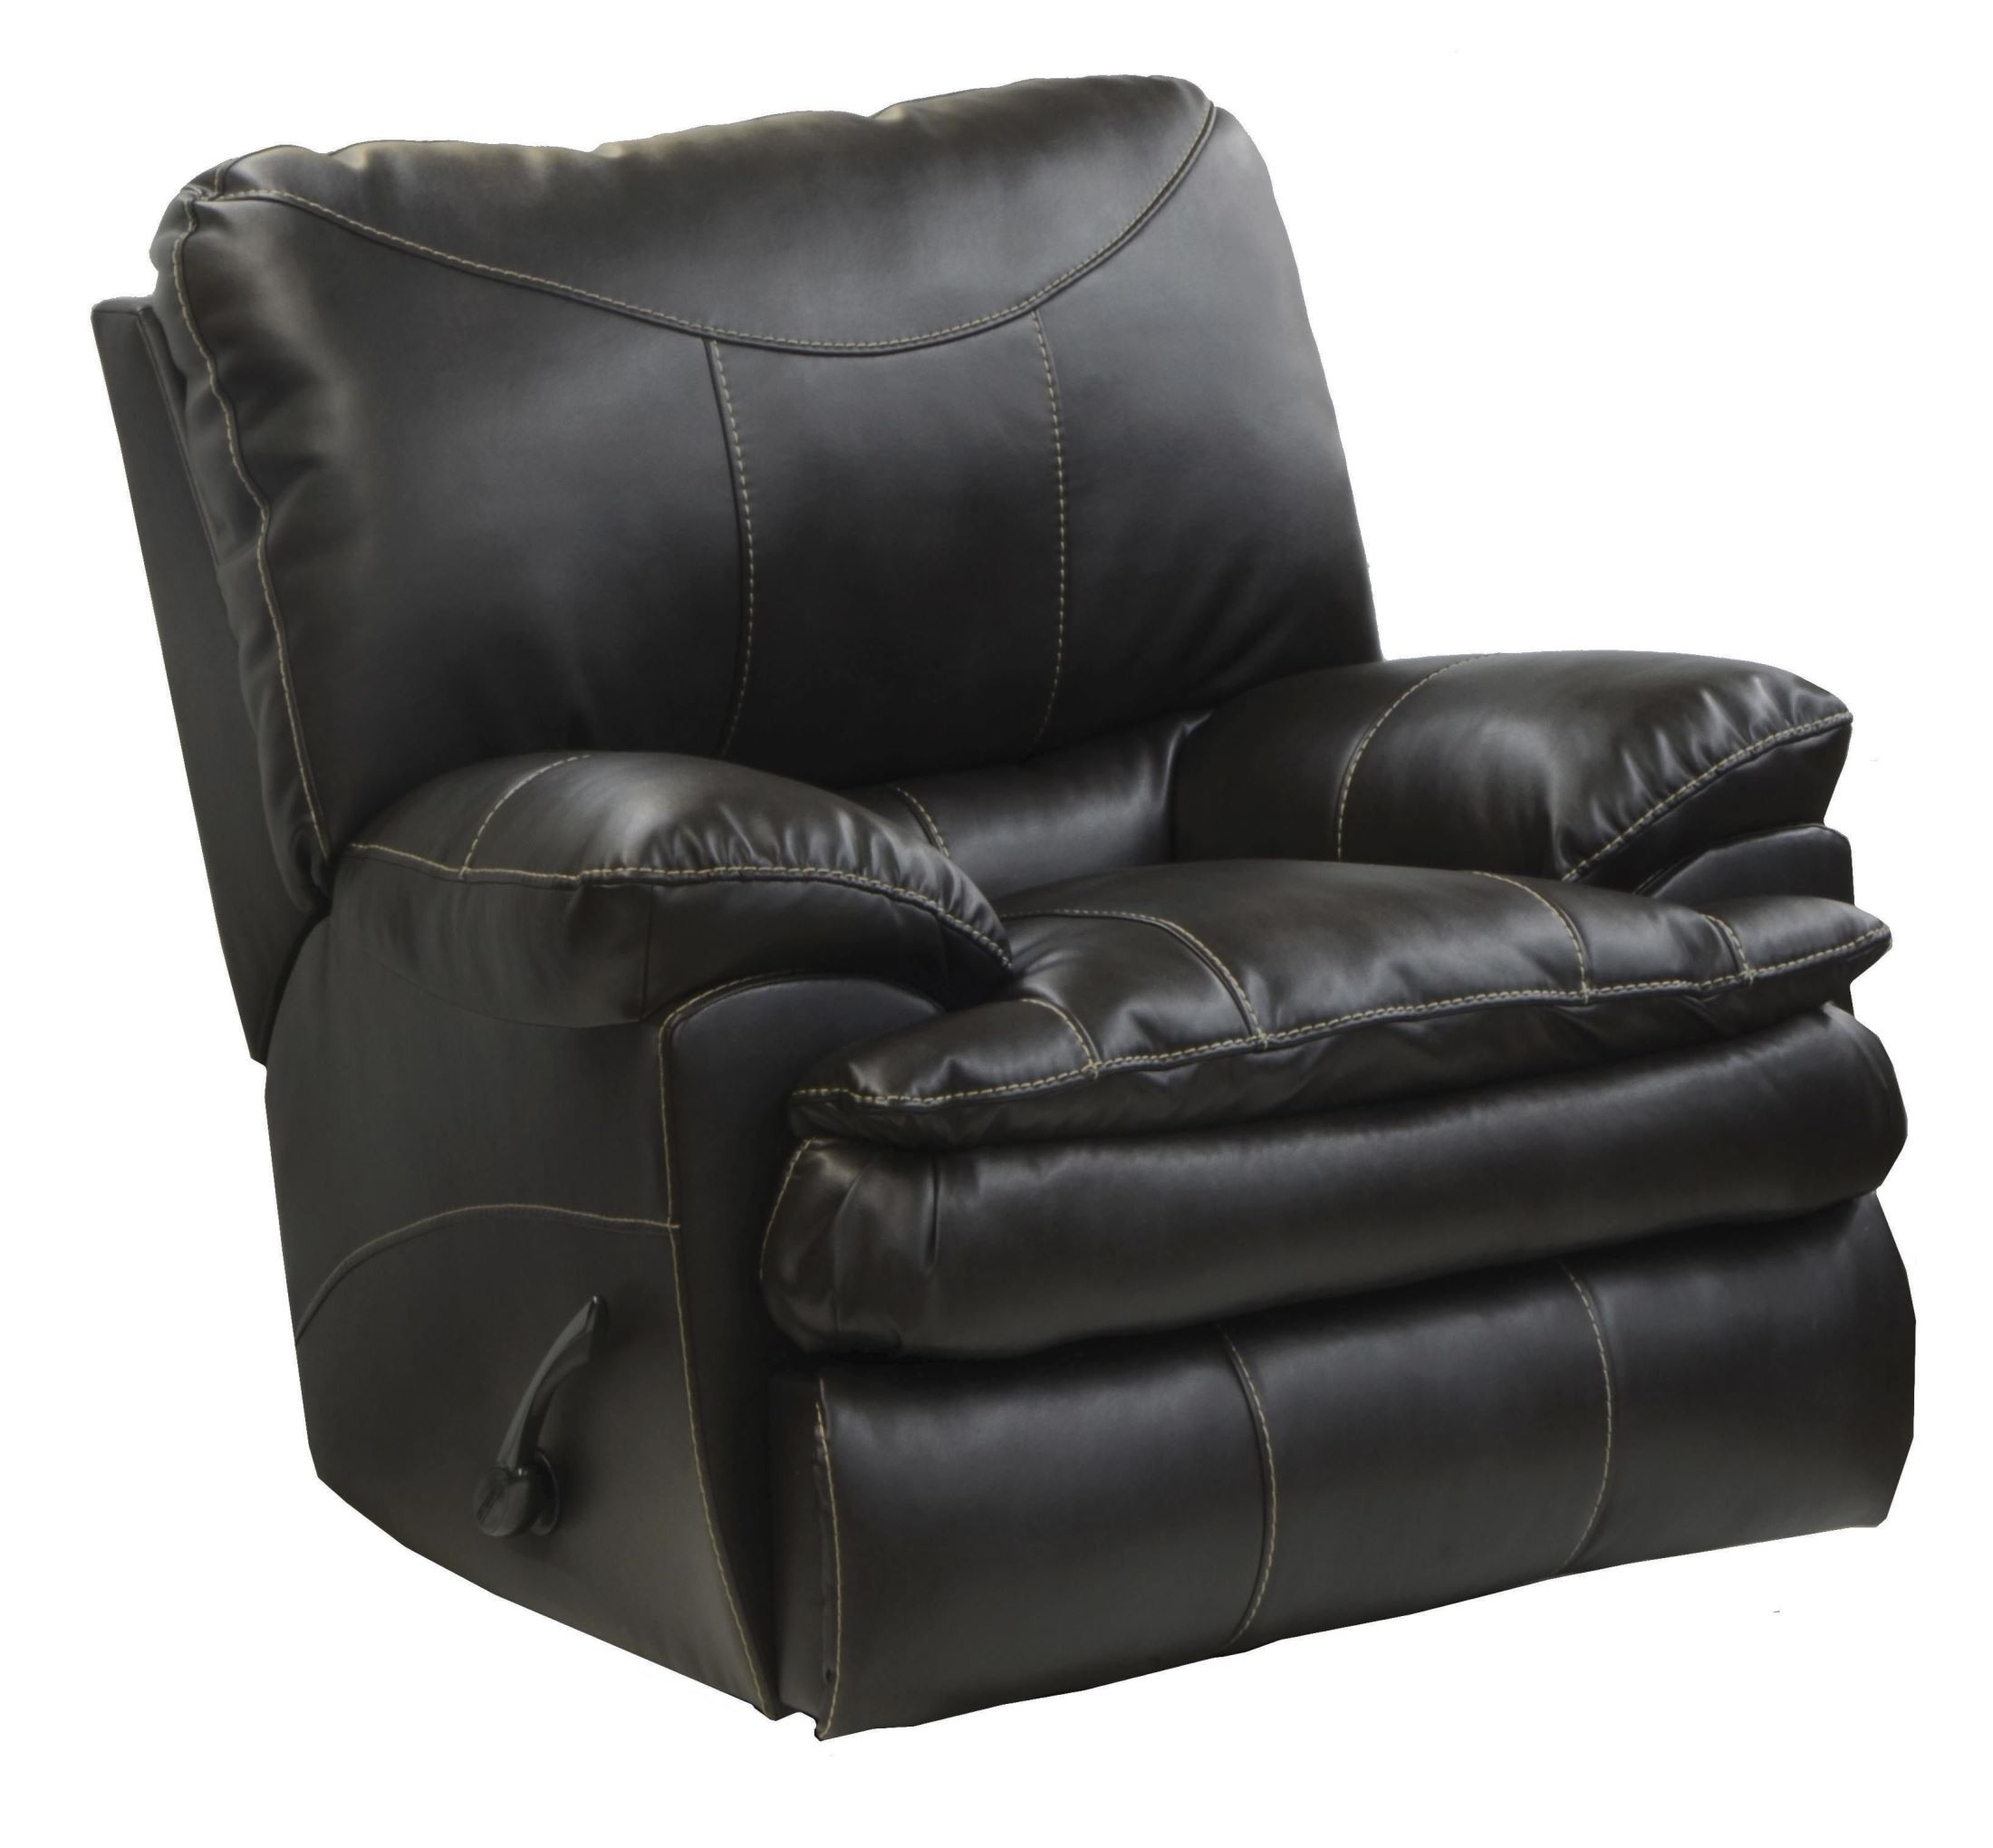 Perez steel power recliner from catnapper for Catnapper cloud nine chaise recliner